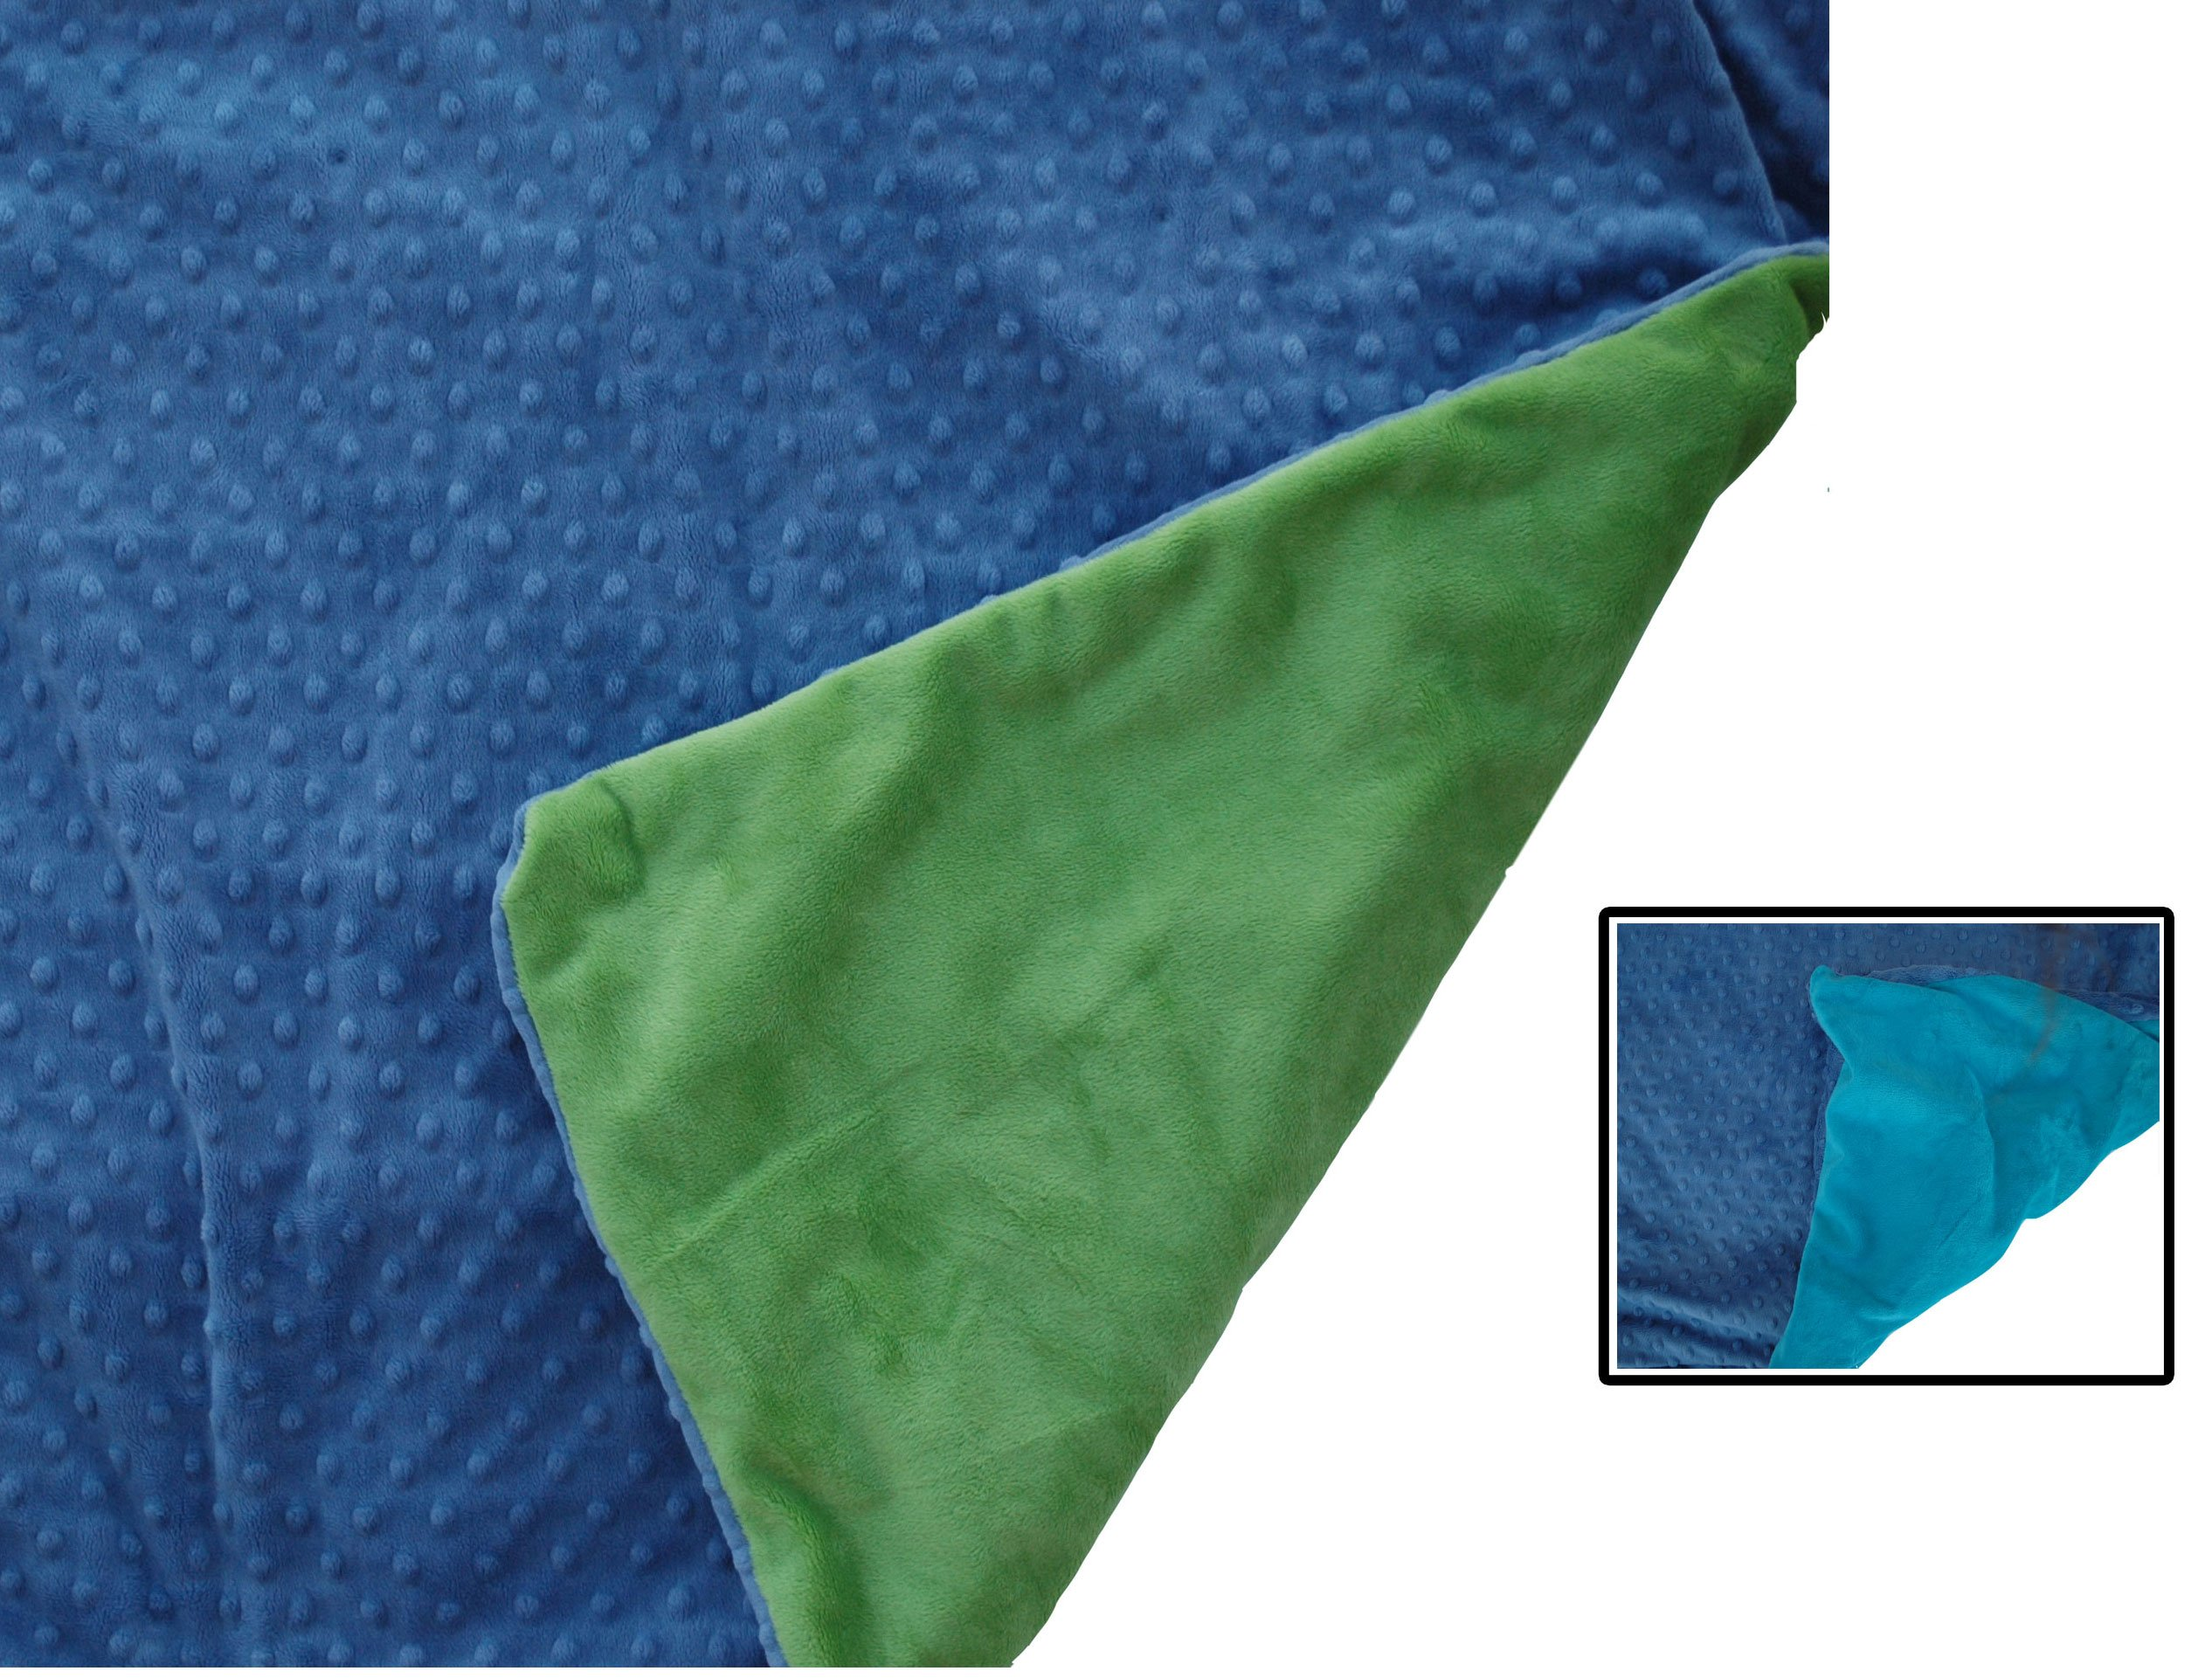 Creature Commforts Weighted Blanket - Medium 6 lbs 40'' x 30'' for kids, adults - Removable cover, soft minky duvet, organic insert - Heavy sensory blanket made in USA - Teal or Jade